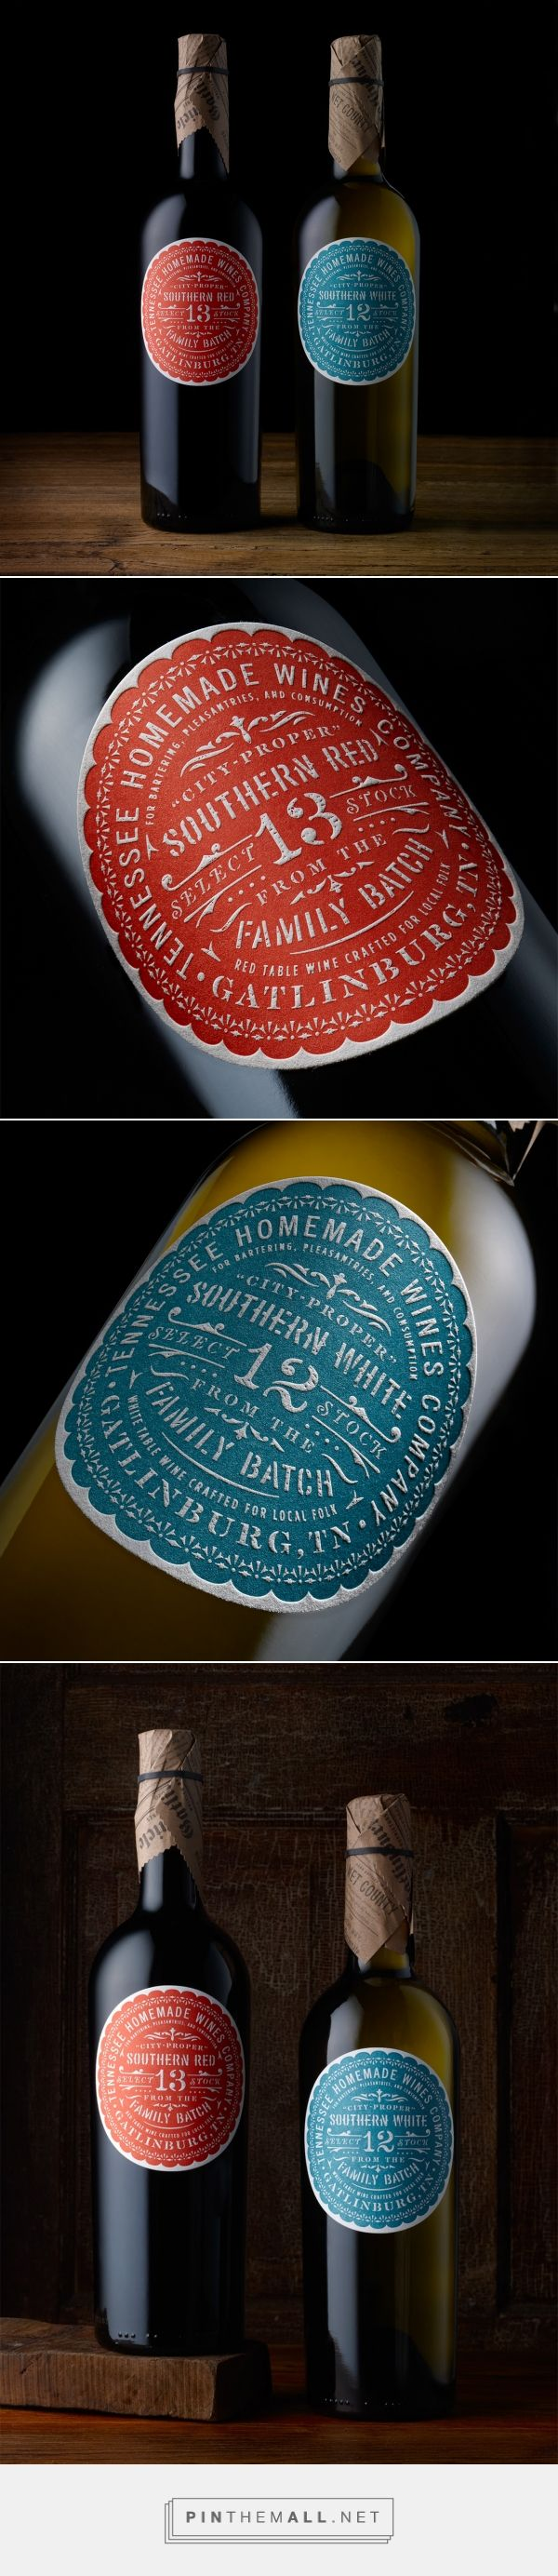 T.H.W. Southern Wine packaging design by Chad Michael Studio (USA) - http://www.packagingoftheworld.com/2016/07/thw-southern-wines.html